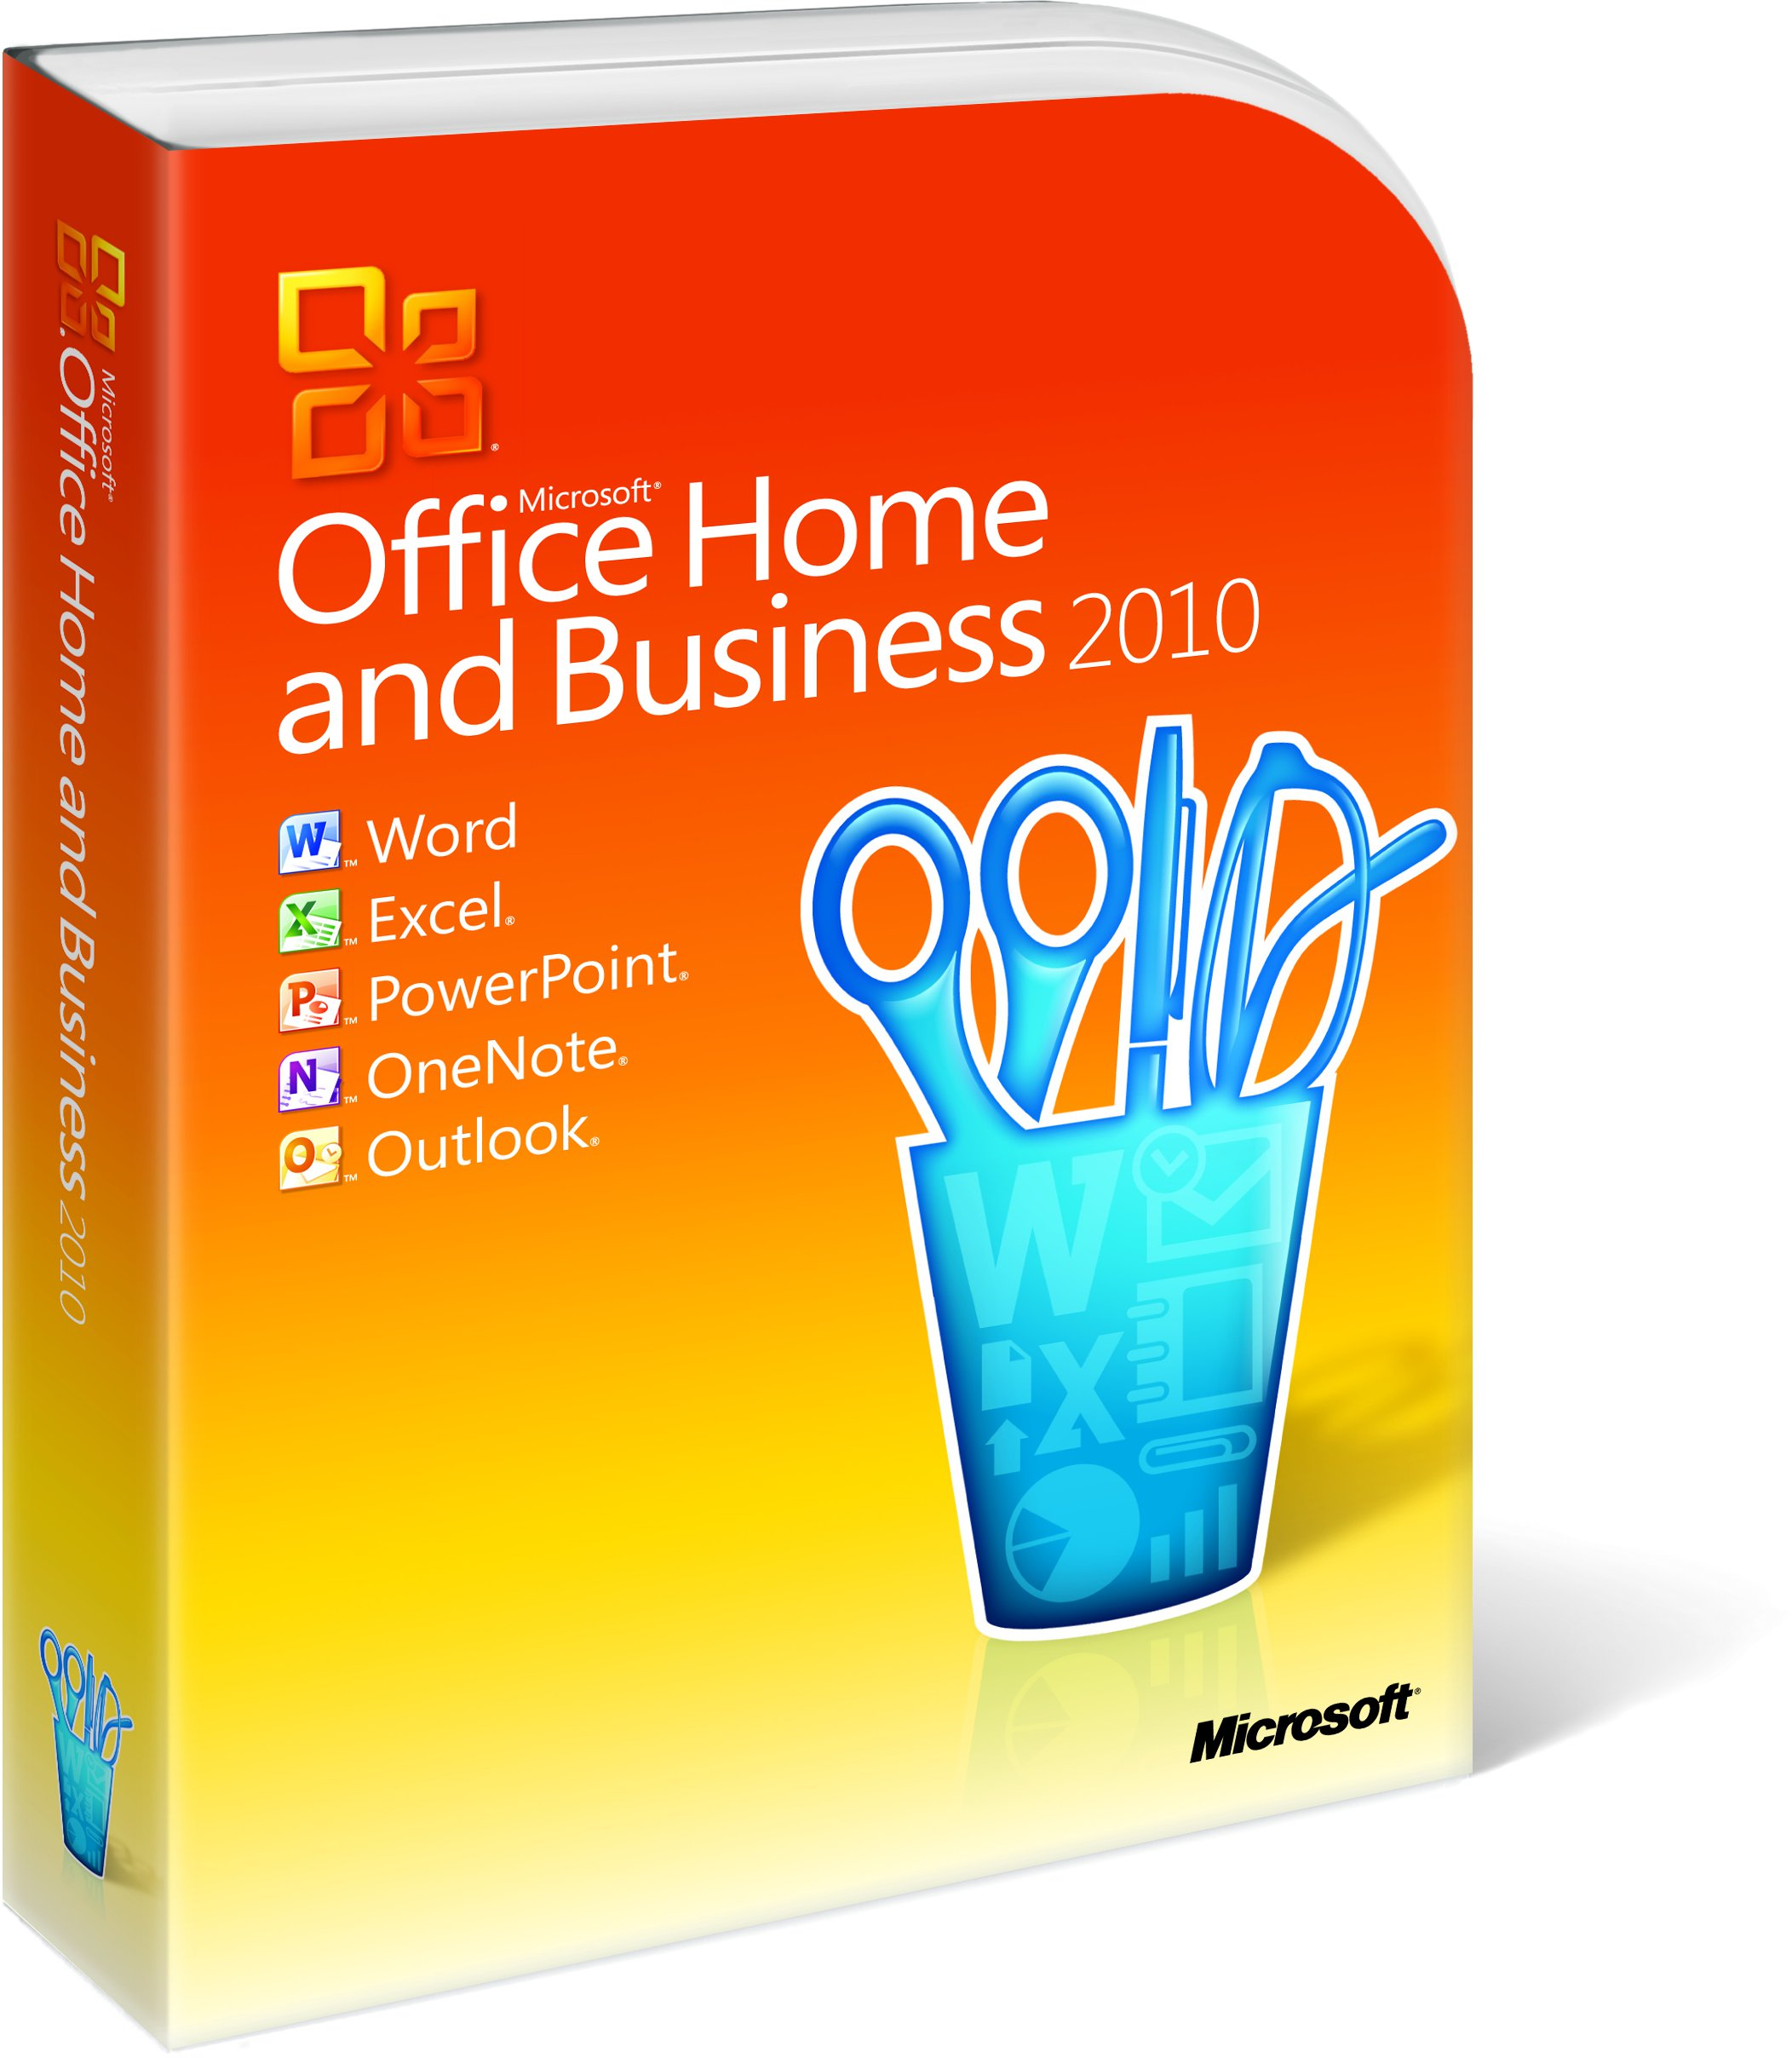 Ms Office 2010 Home And Business Price